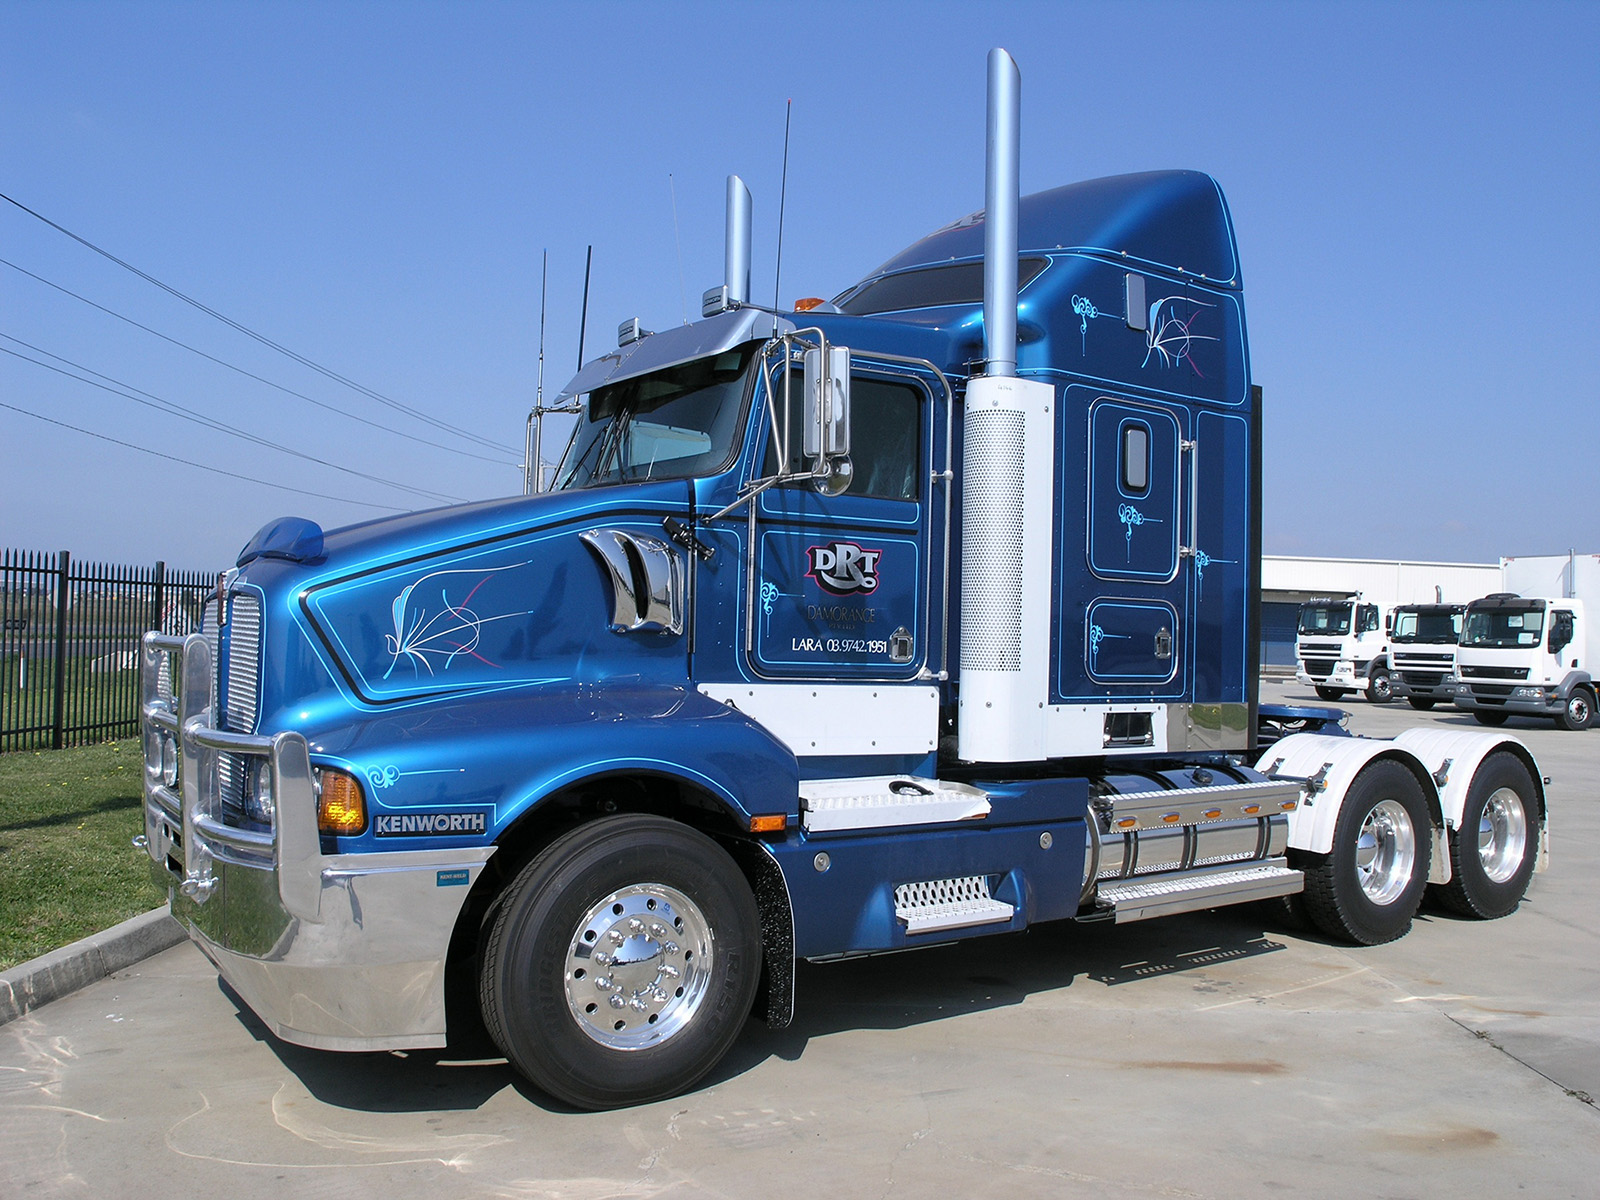 Kenworth T604 photos - PhotoGallery with 9 pics| CarsBase.com